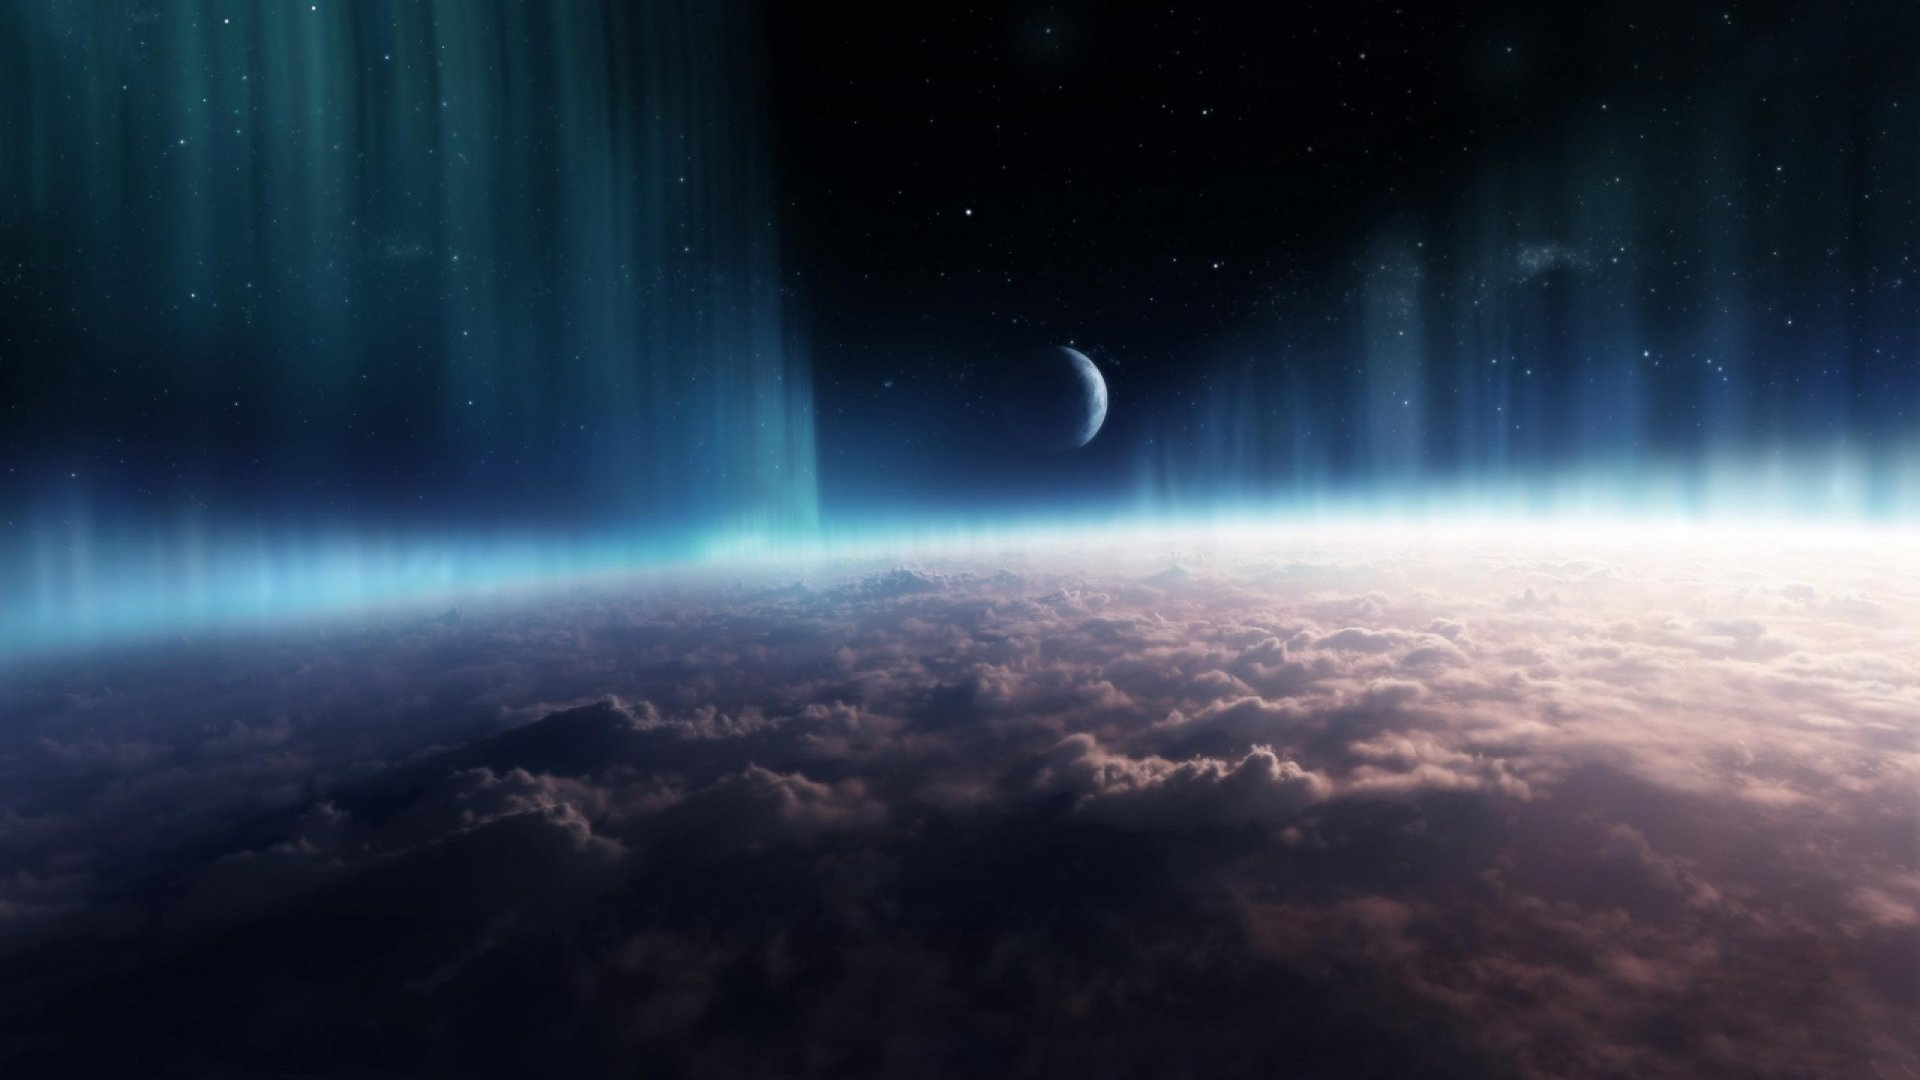 Universe Space With Clouds Wallpaper 2k Quad Hd Id2904